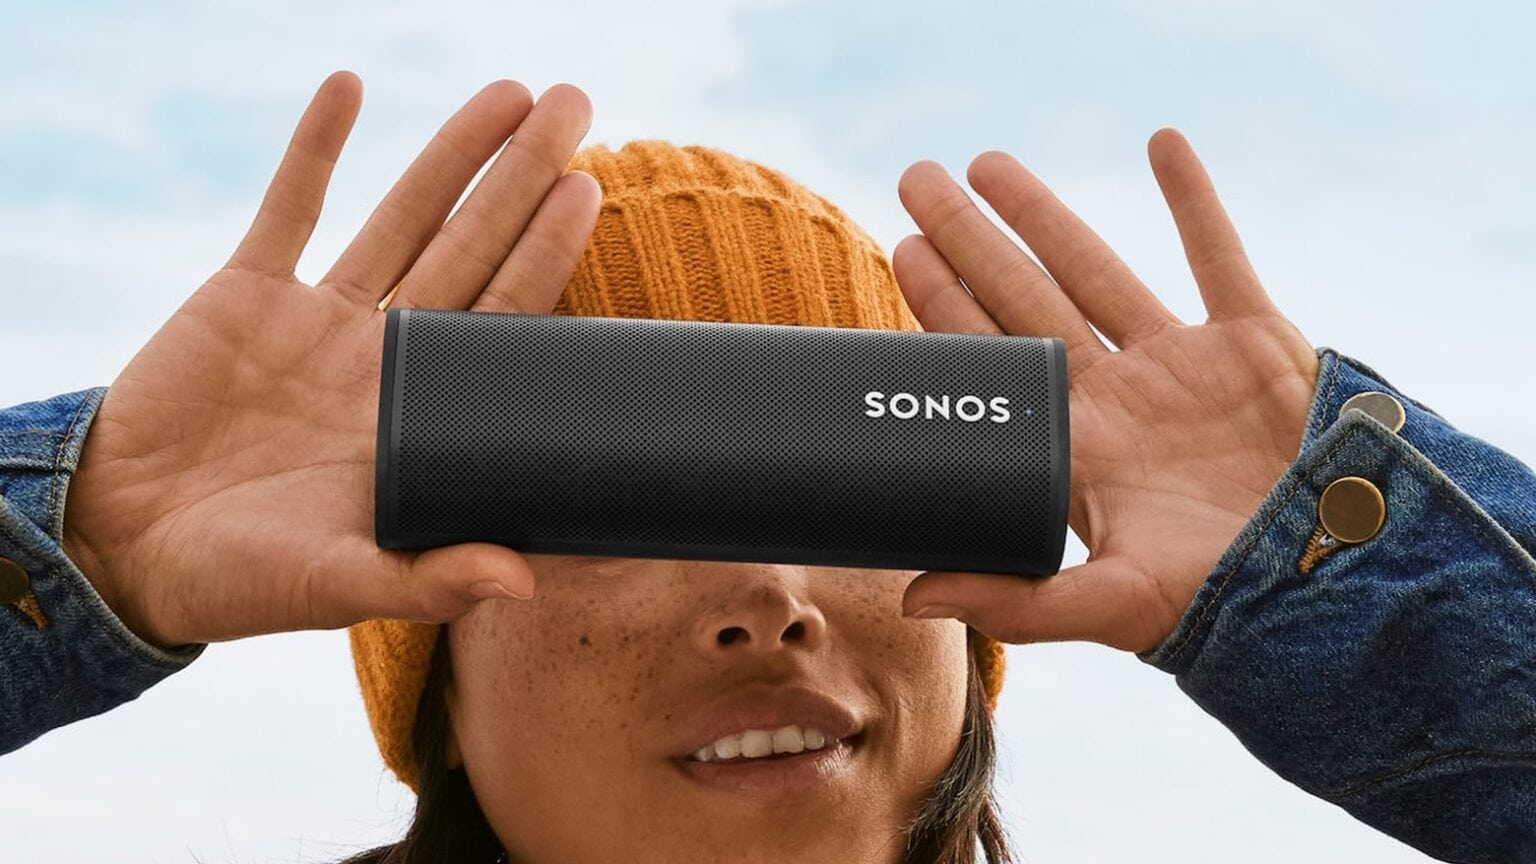 Pint-size Sonos Roam speaker goes anywhere your iPhone does